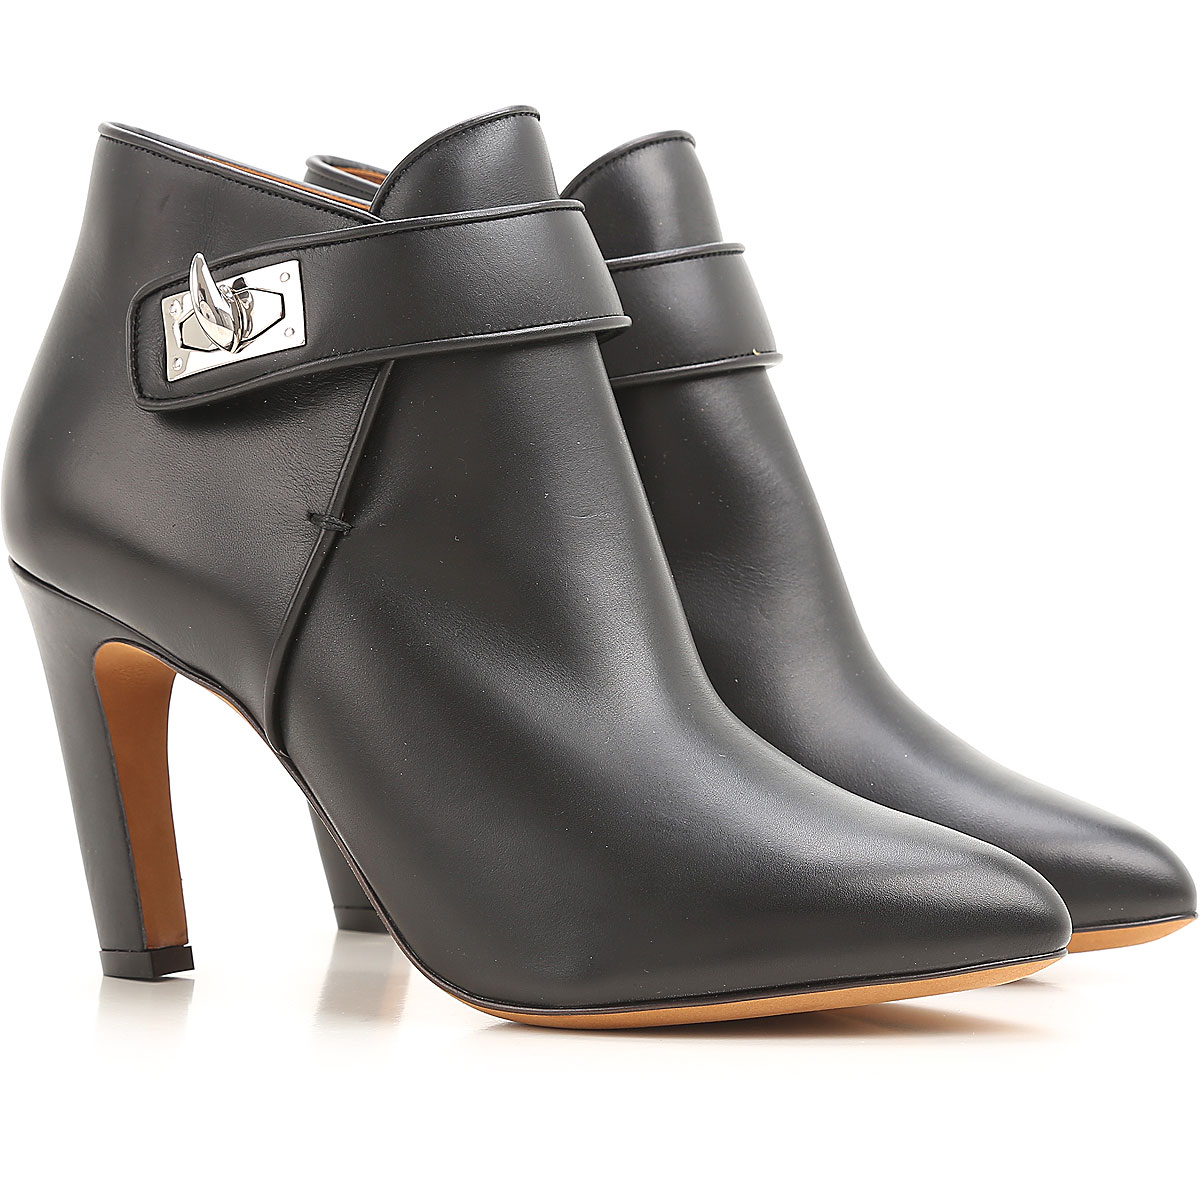 Givenchy Boots for Women Booties On Sale in Outlet USA - GOOFASH